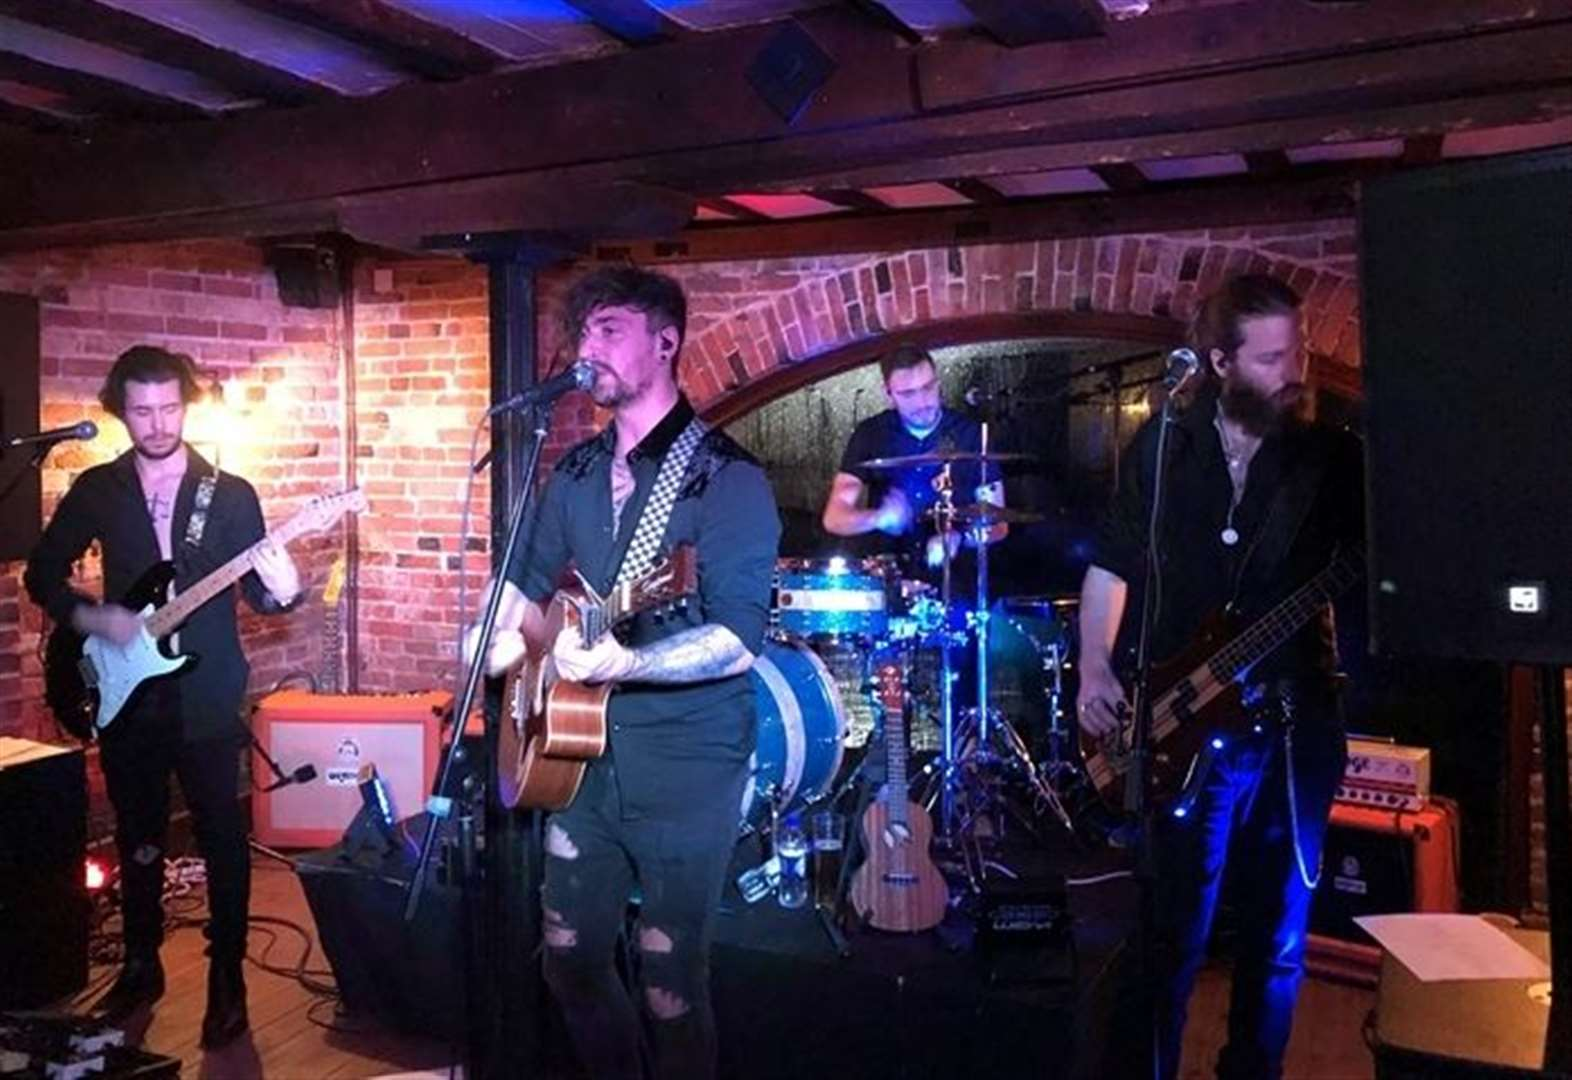 Bands brings festival vibe to fundraiser